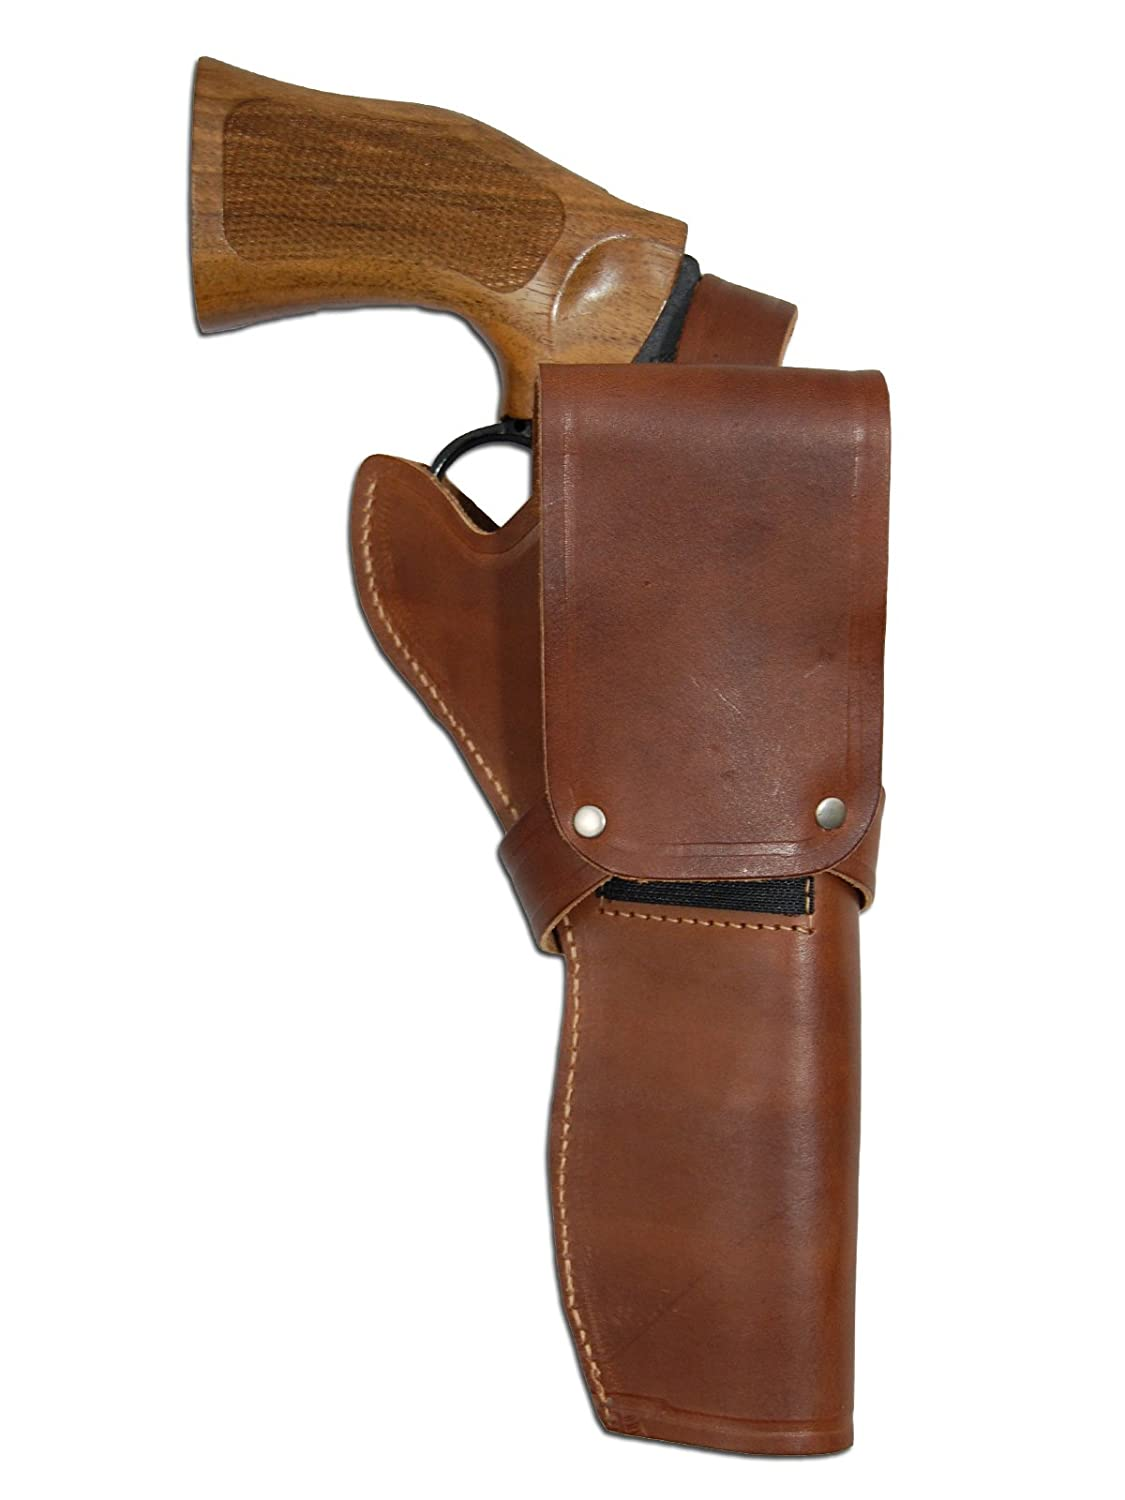 Barsony Holsters & Belts Größe 6 Beretta Colt Ruger S&W Links ...